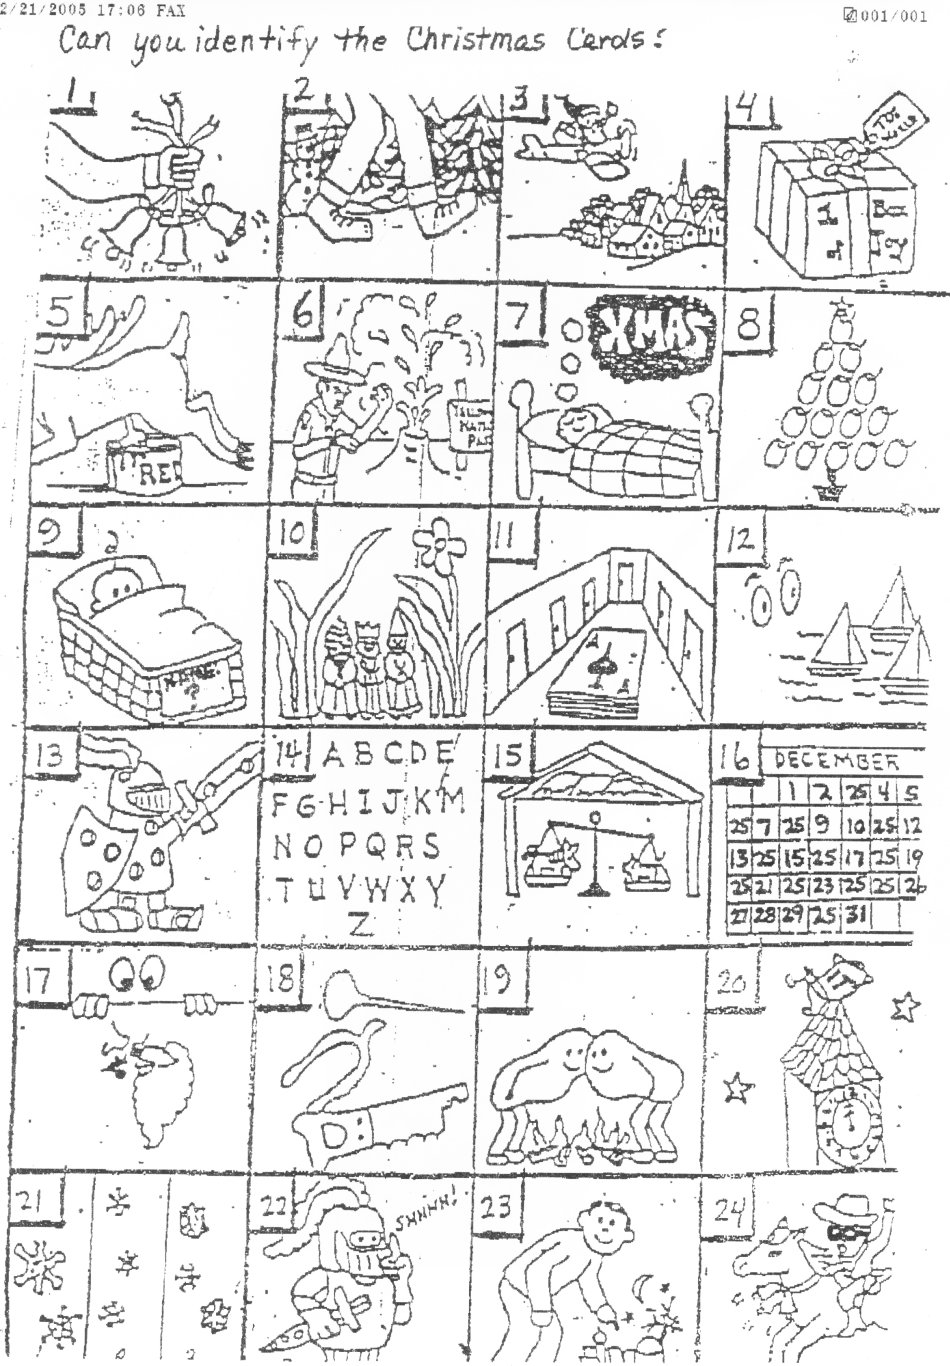 photograph relating to Guess the Christmas Song Printable referred to as The Authentic Puzzle